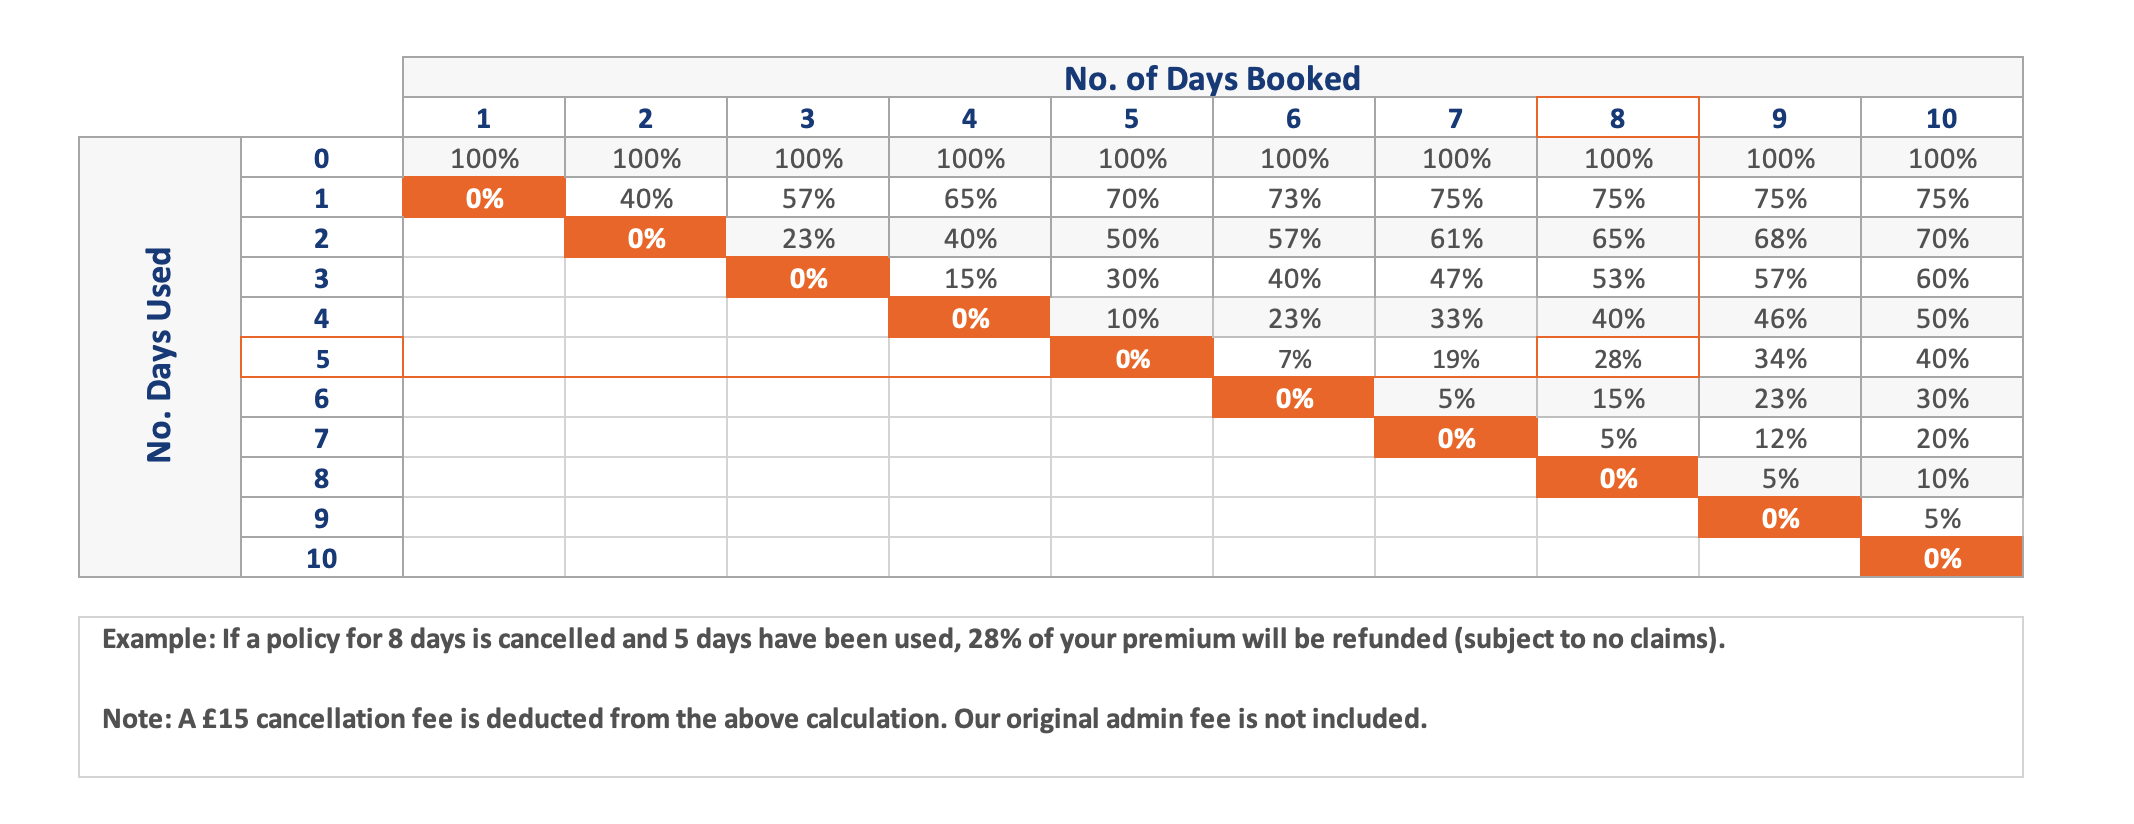 Example of Premium Refund in Case of Cancellation